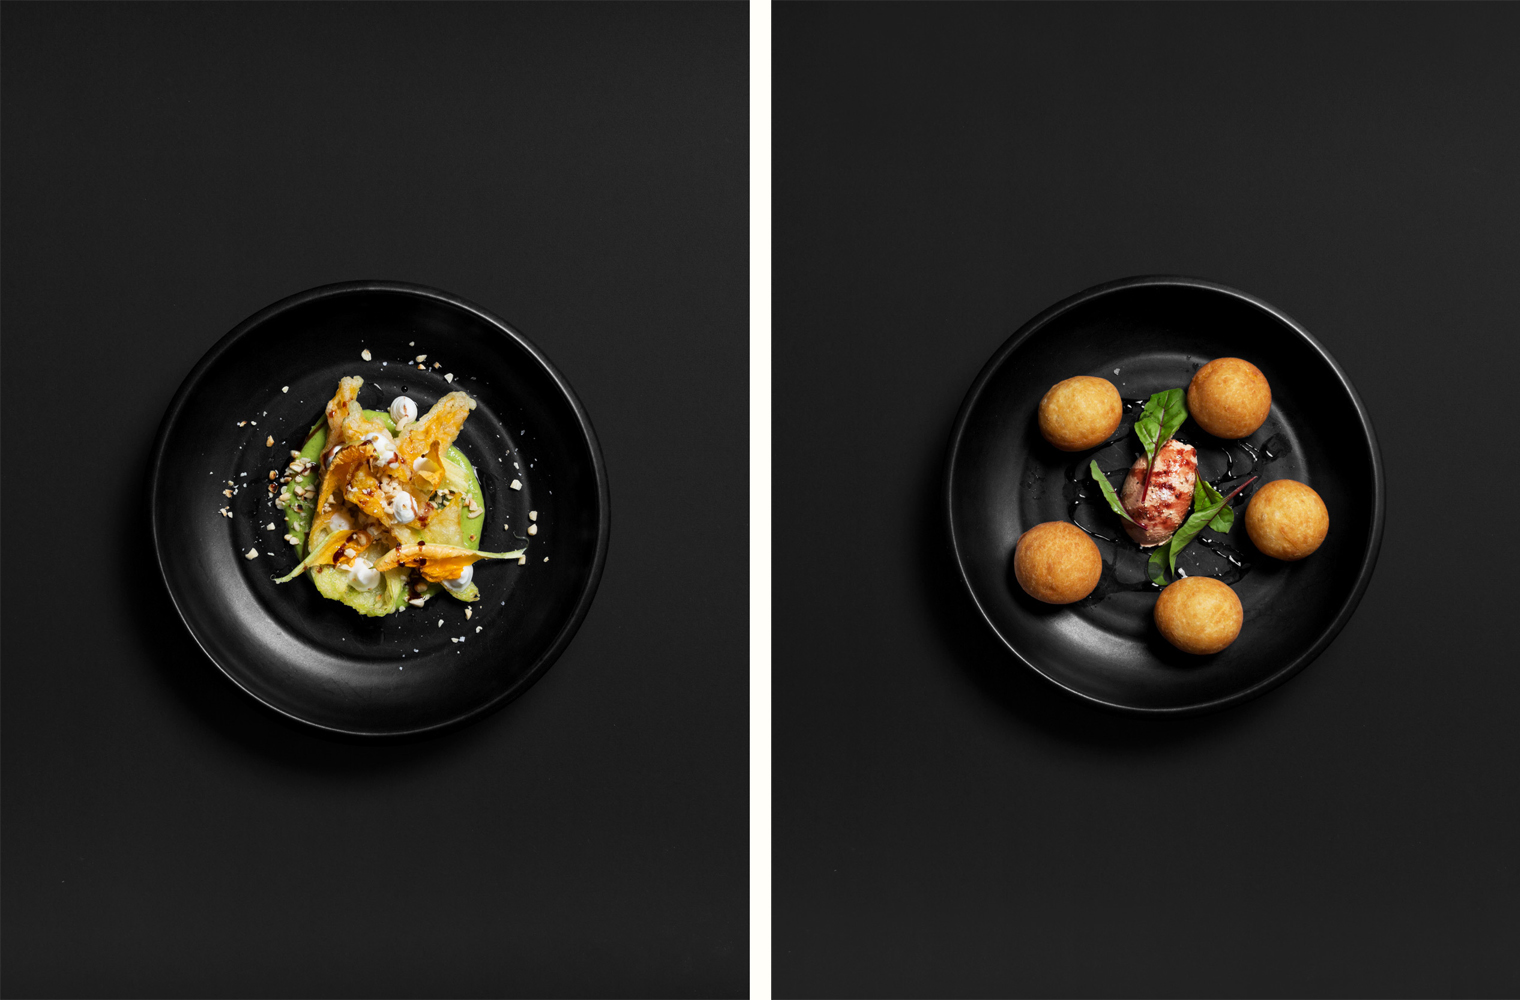 Food photography art direction by Studio South for Auckland bar and restaurant Culprit